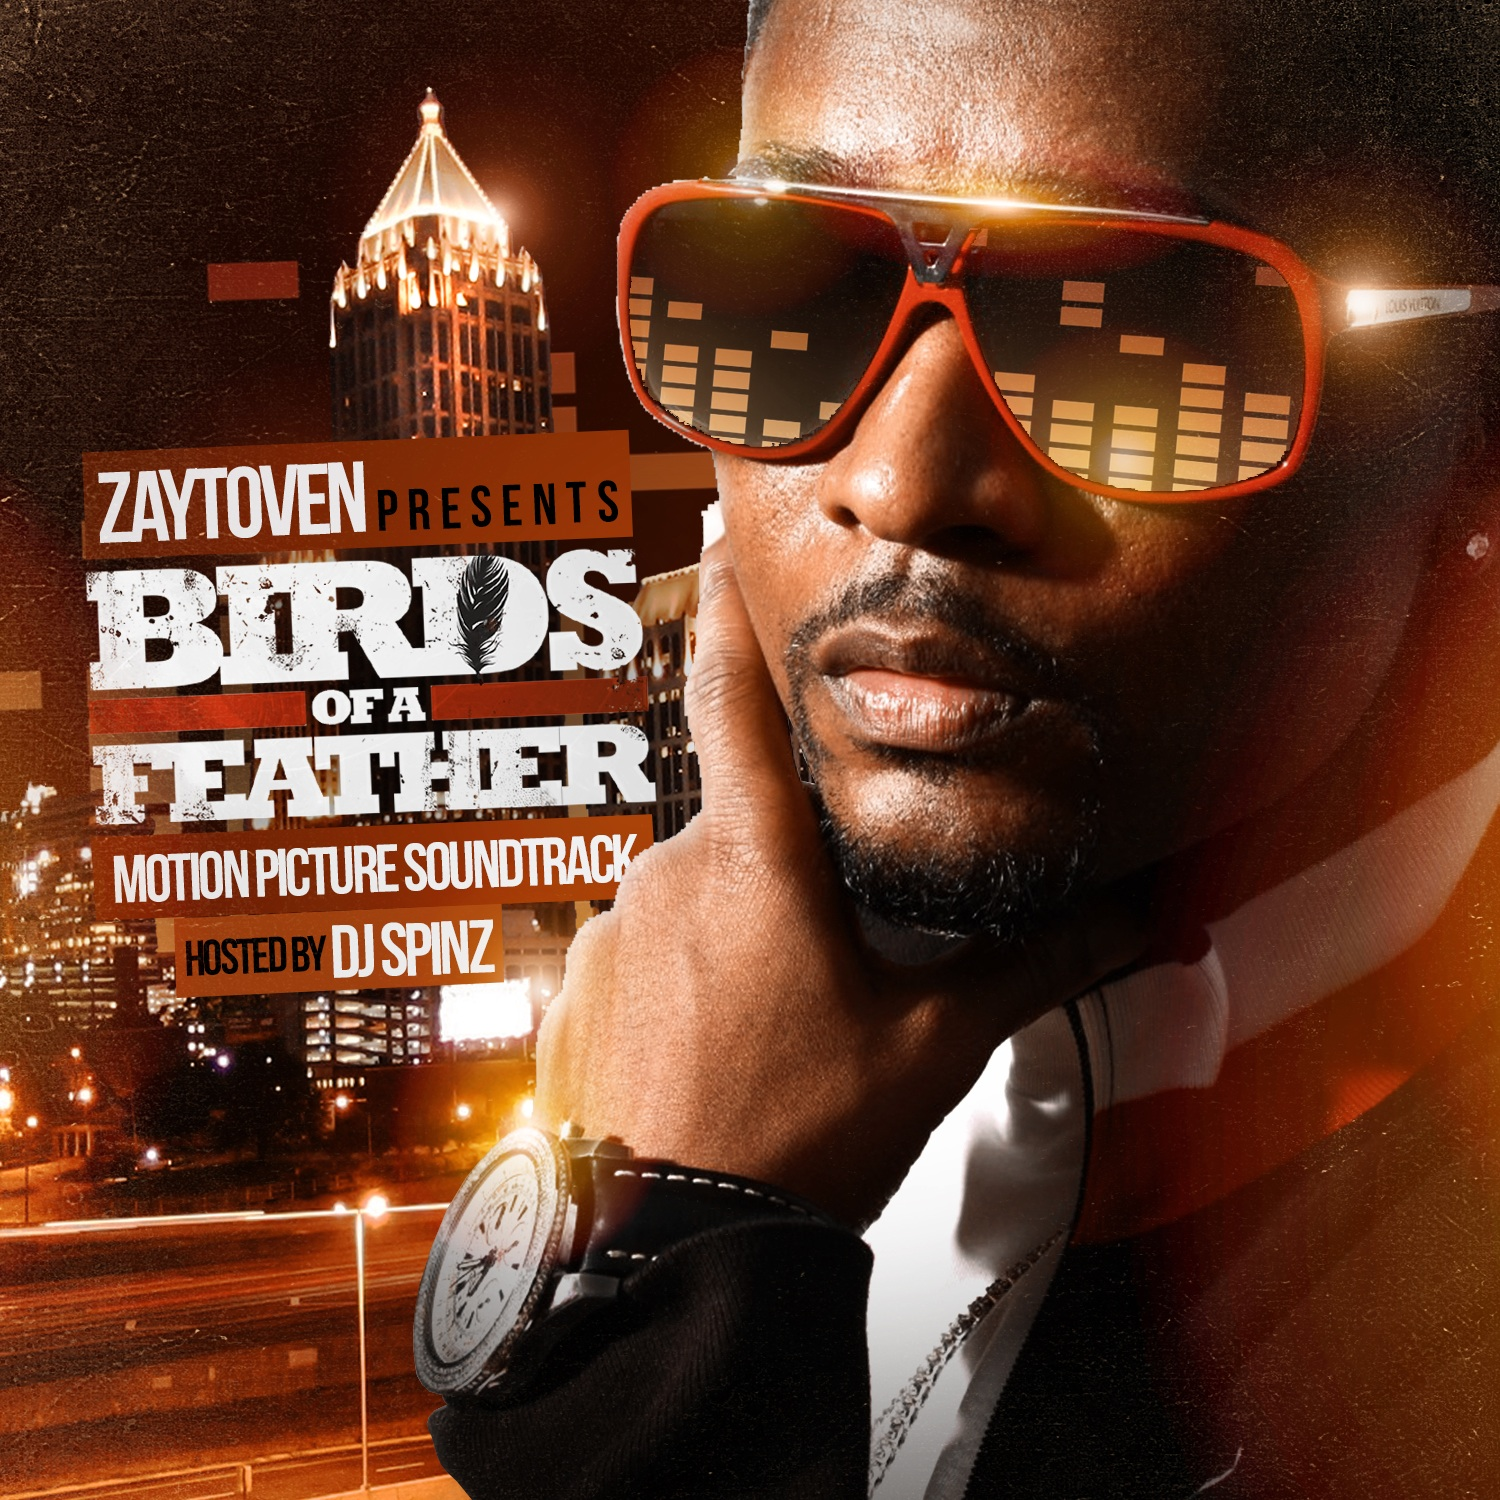 Zaytoven & Various Artists - Birds Of Feather Motion Picture Soundtrack (Presented By Zaytoven) Cover Art